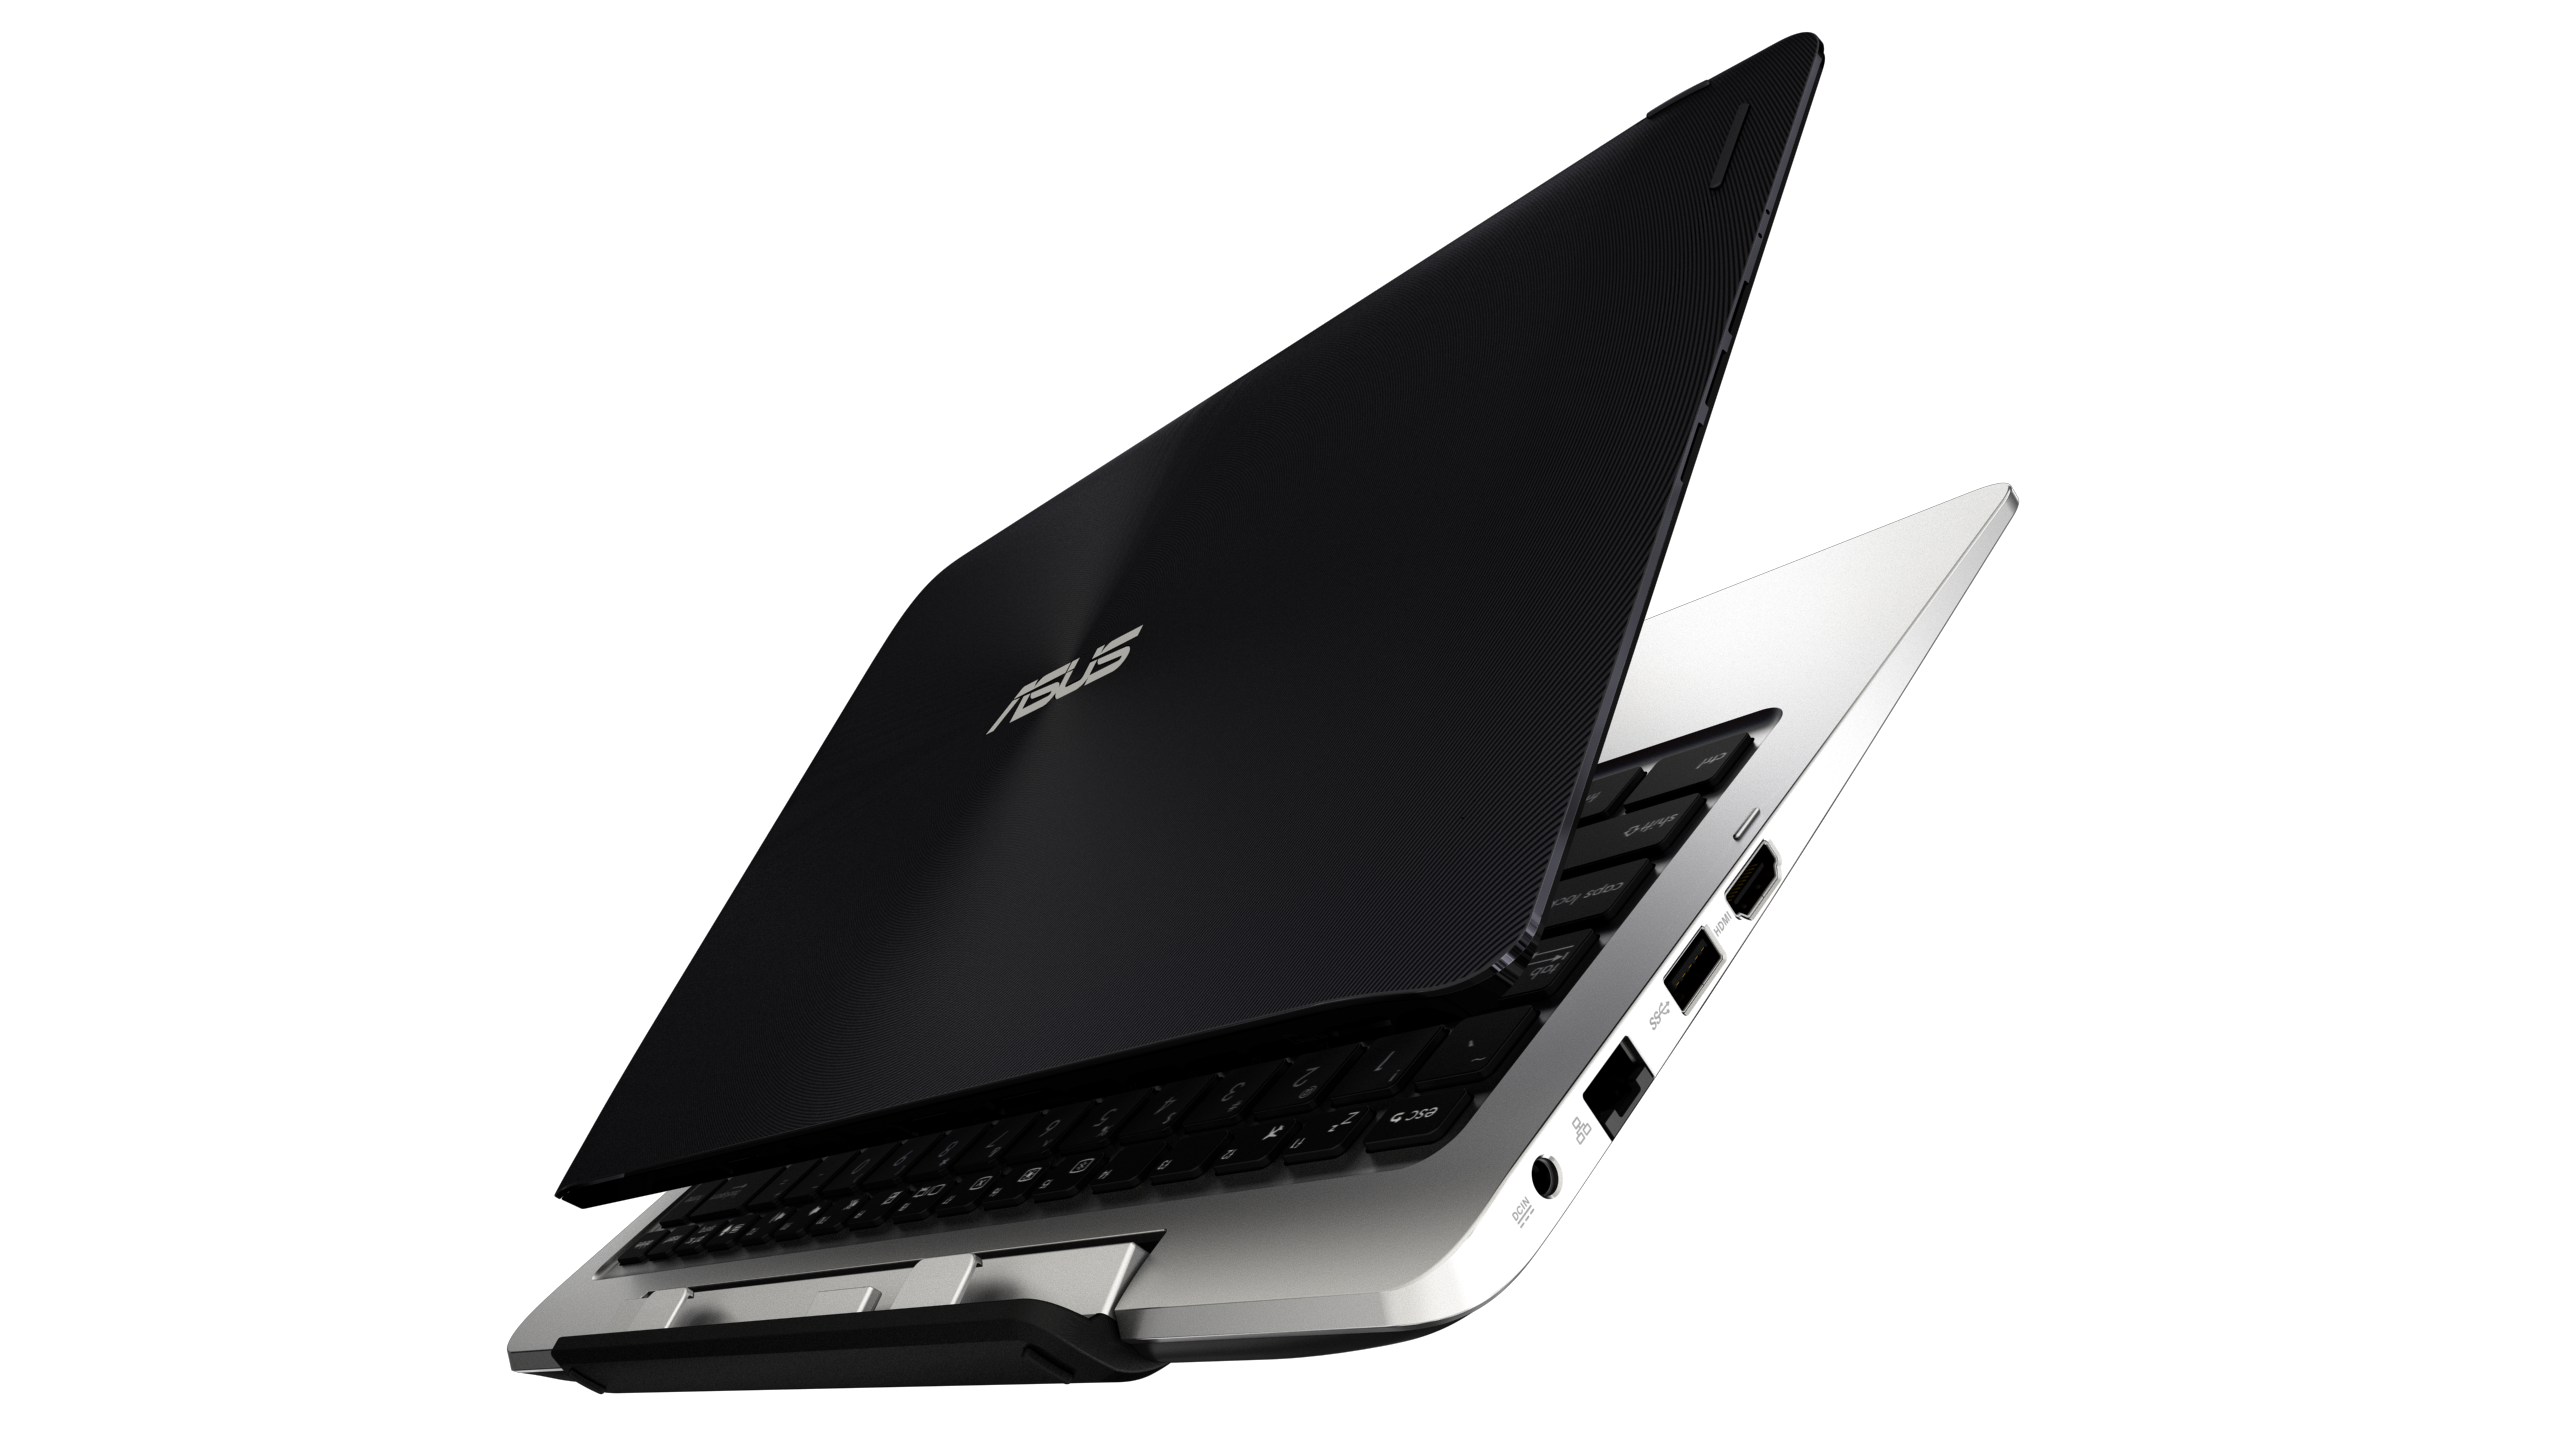 Transformer Book Duet TD300 and VivoTab Note 8 - ASUS at CES